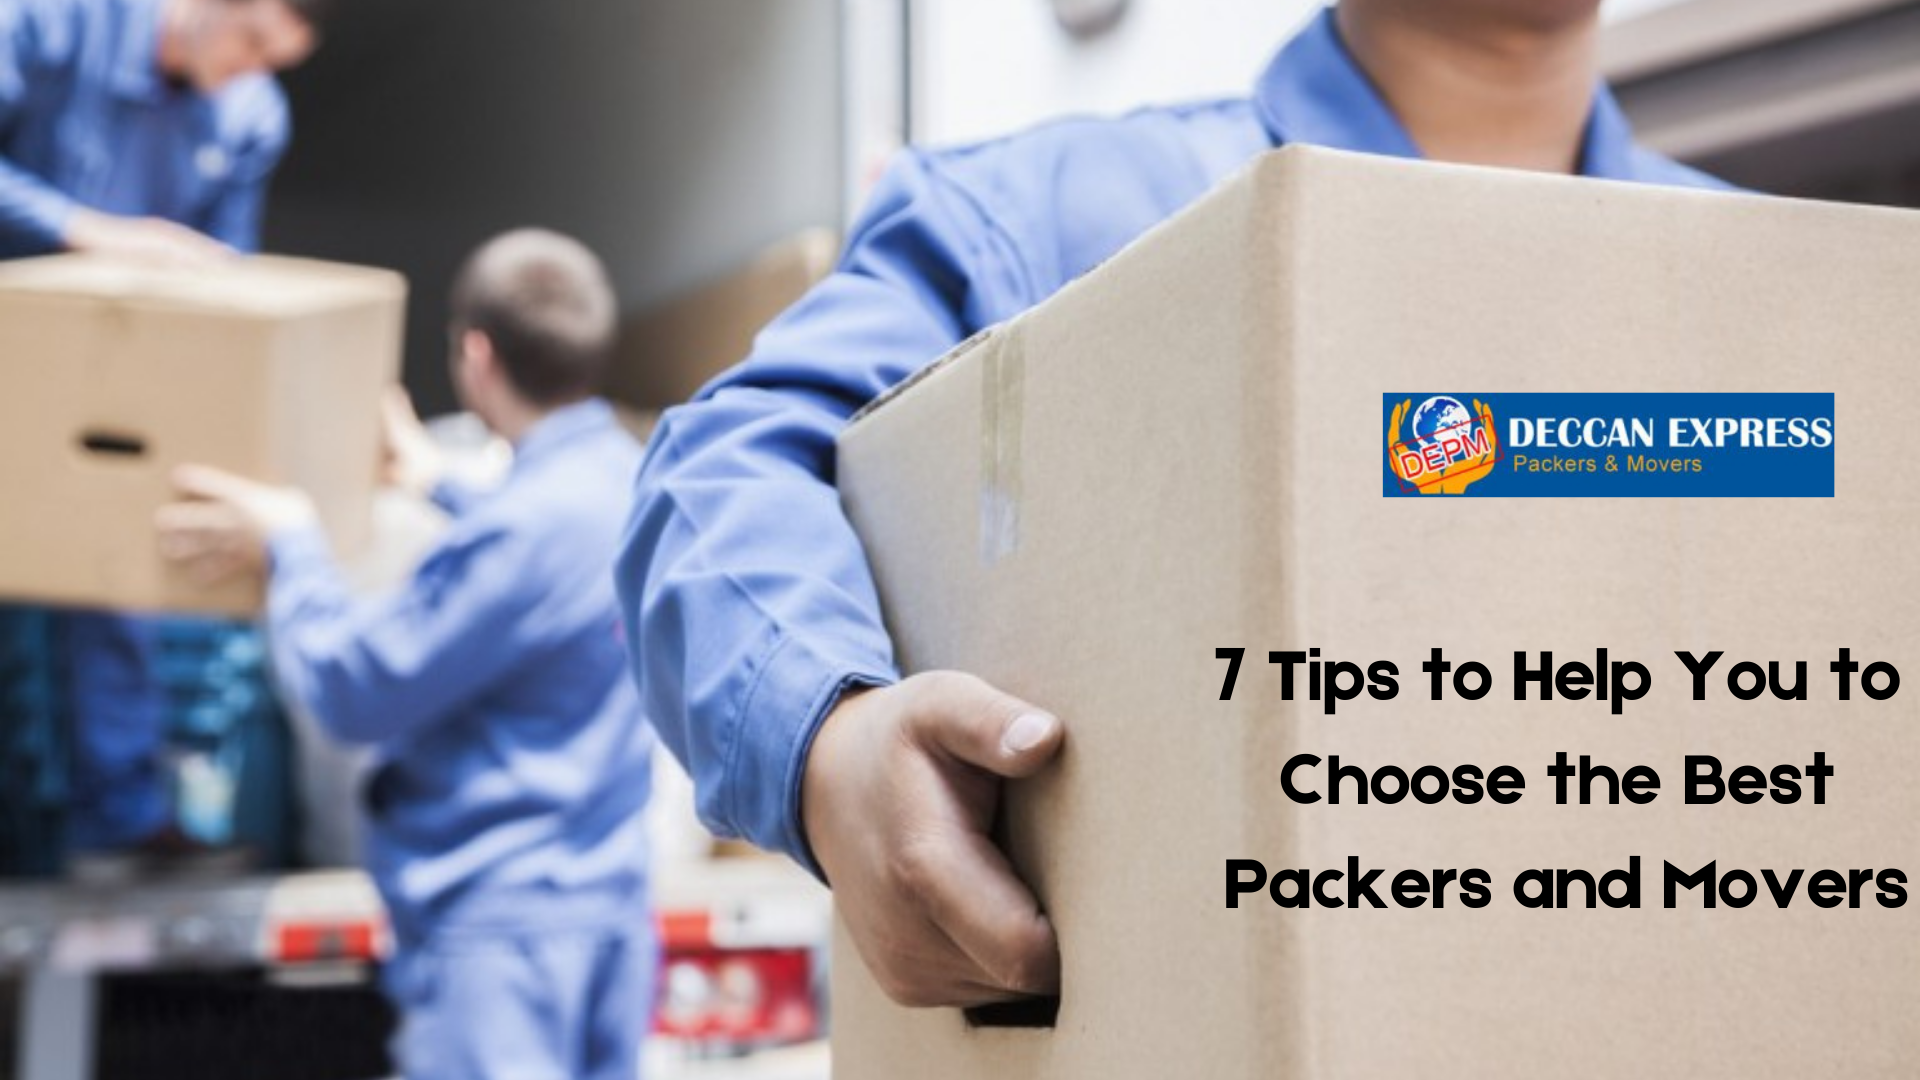 7 Tips to Help You to Choose the Best Packers and Movers